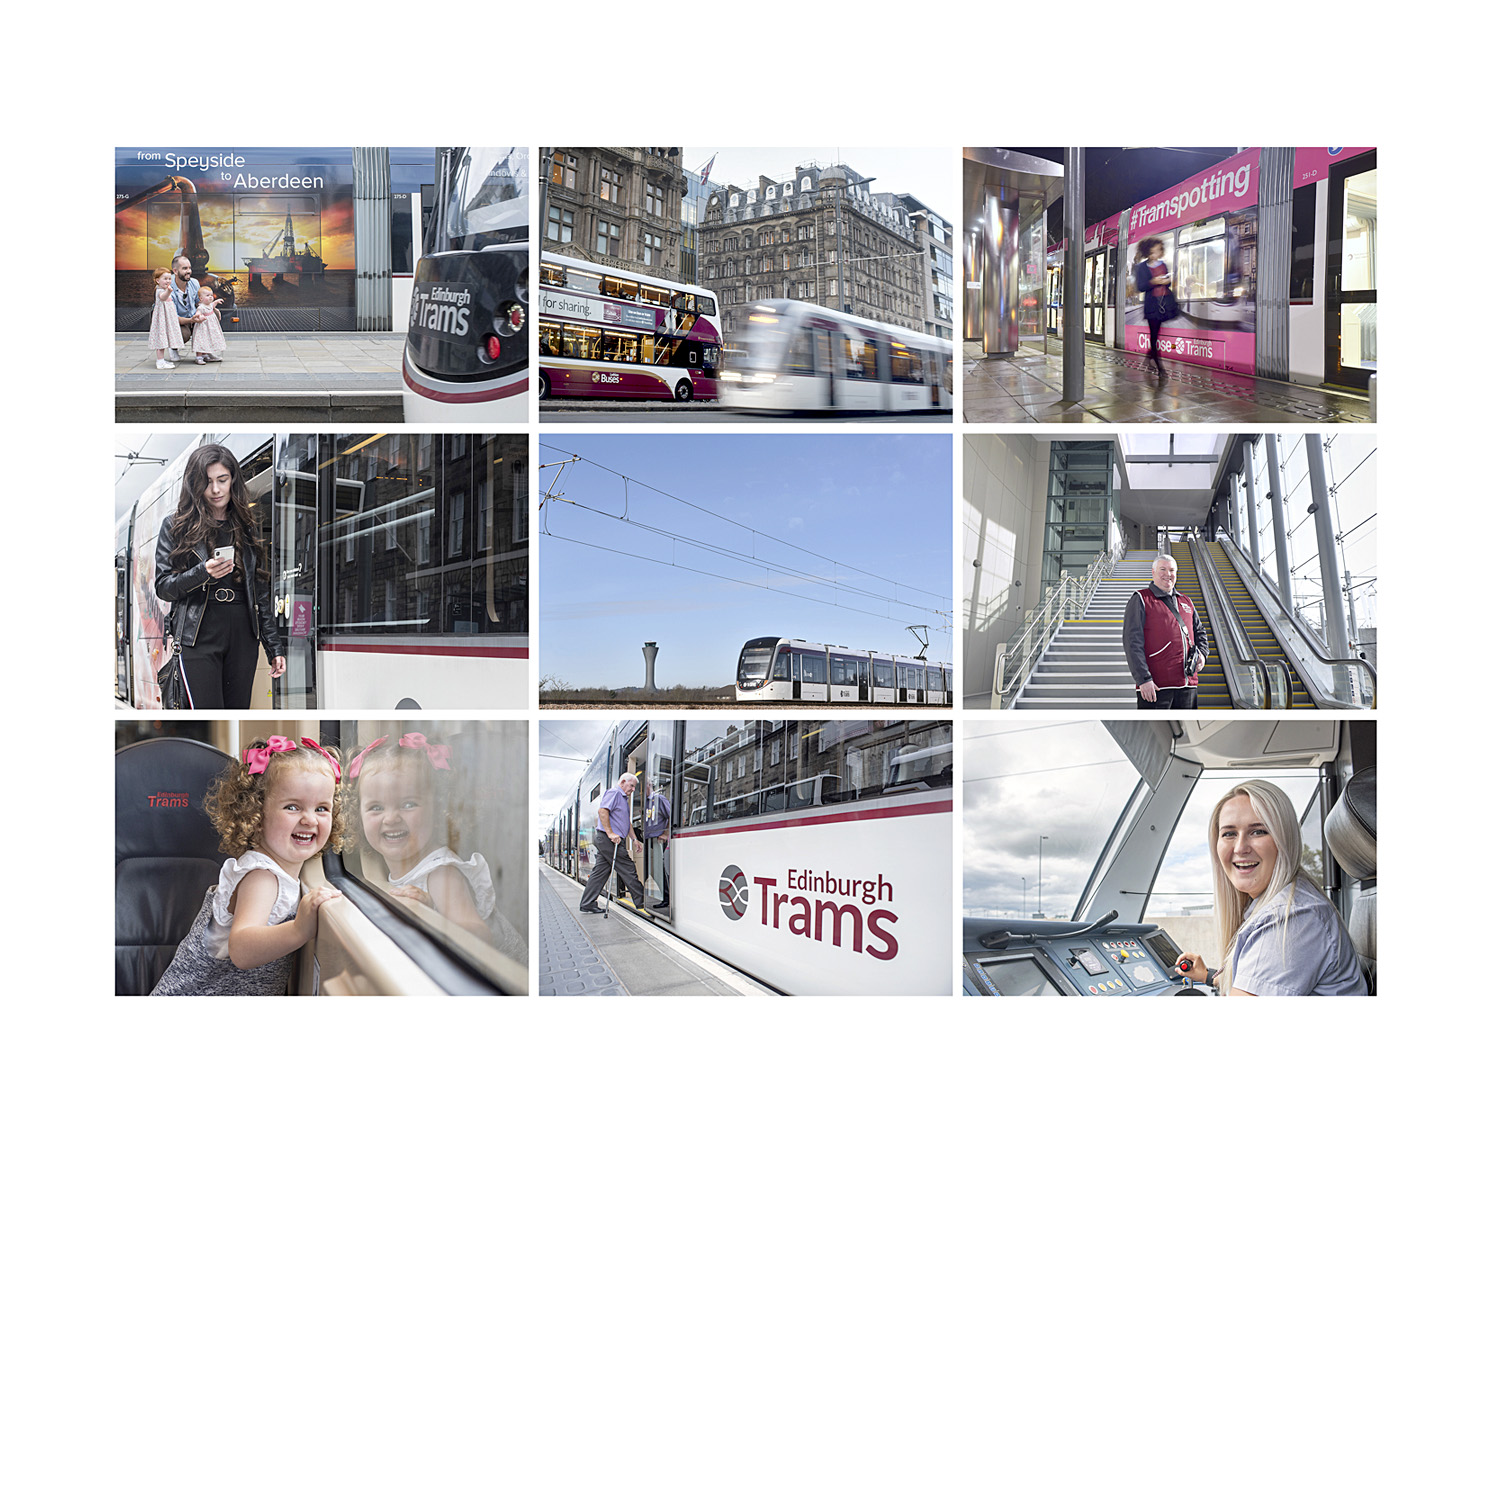 Edinburgh Trams,editorial-and-lifestyle-photography-for-business